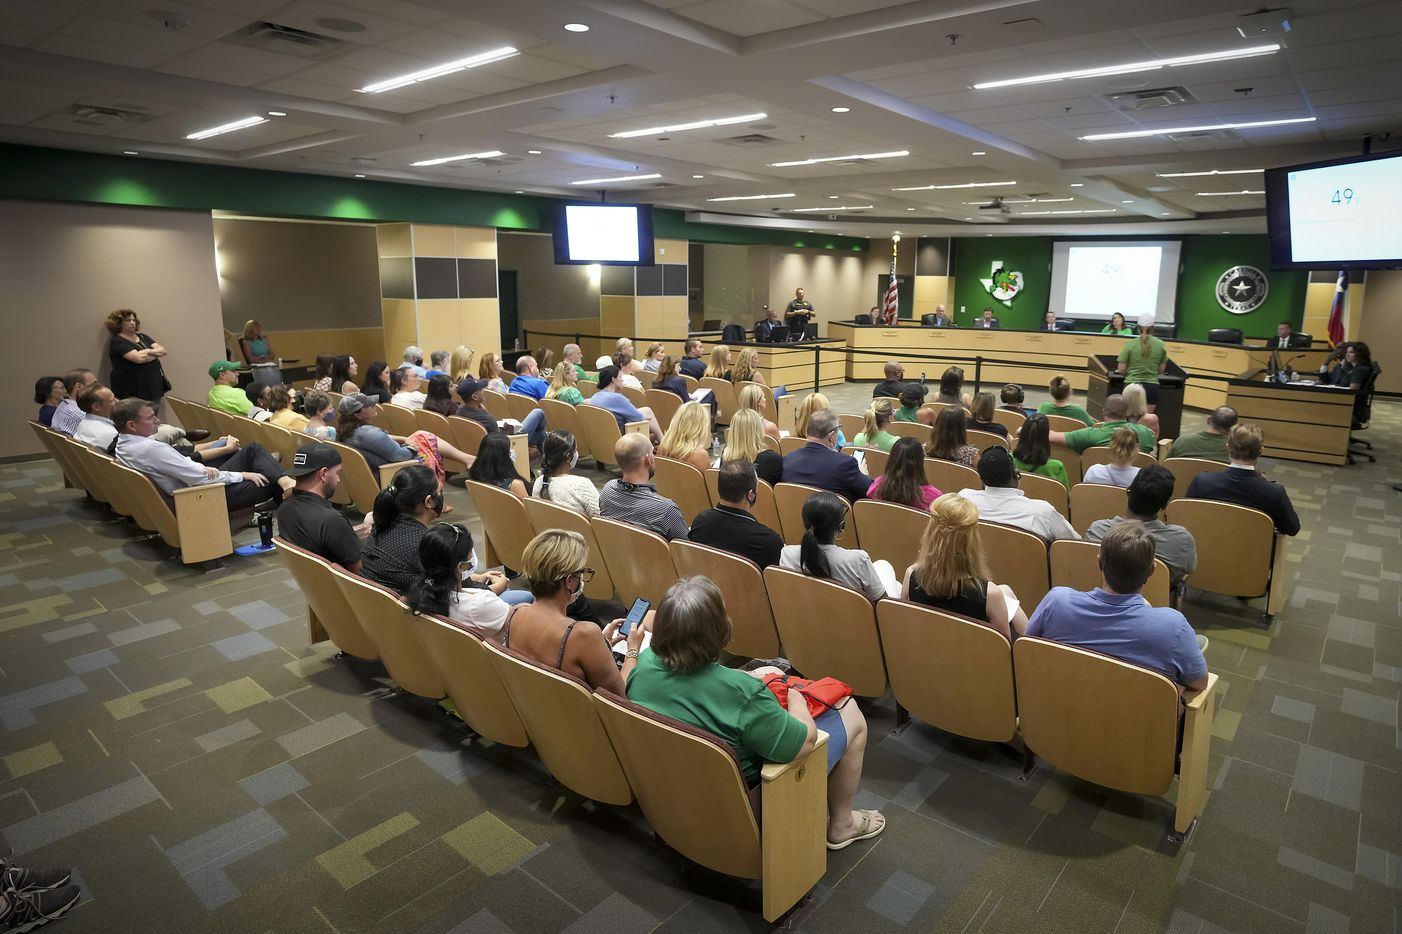 Every seat is full in the board room as a speaker makes comment opposed to mask mandates during public comment at the Carroll ISD school board meeting on Monday, Aug. 23, 2021, in Southlake, Texas. (Smiley N. Pool/The Dallas Morning News)